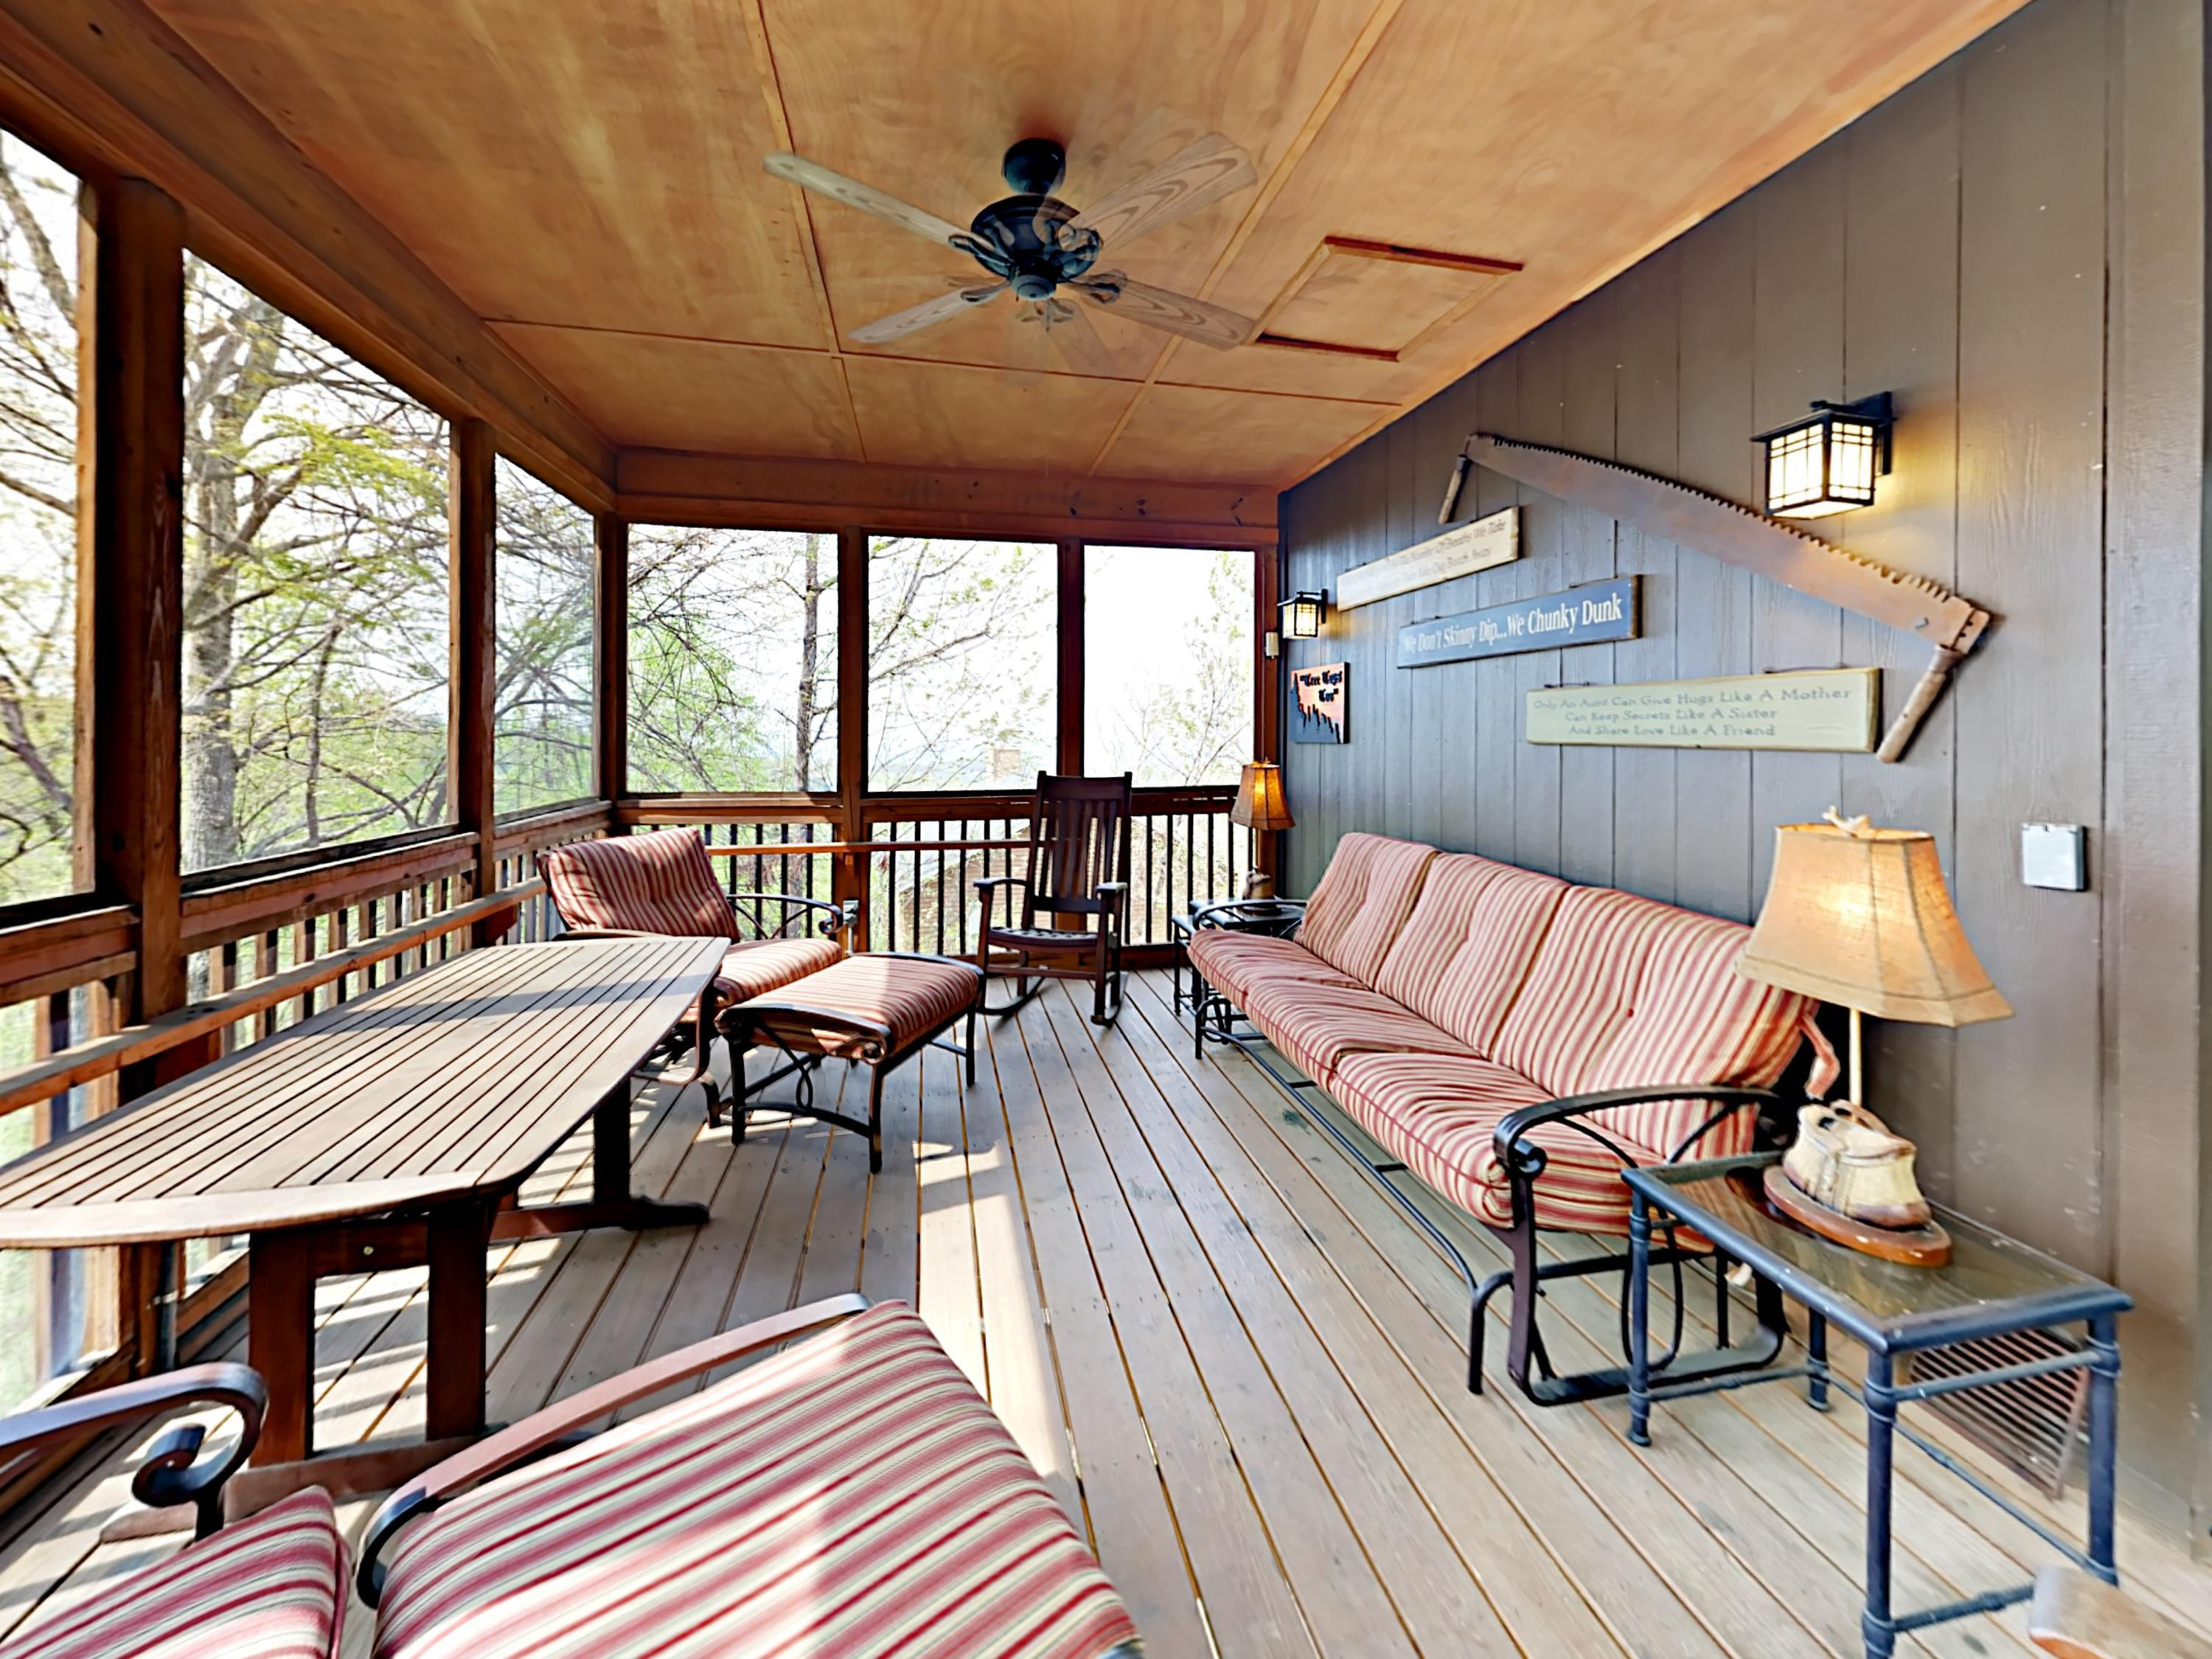 Breathe the fresh mountain air from a sofa and 4 chairs on the screened porch.